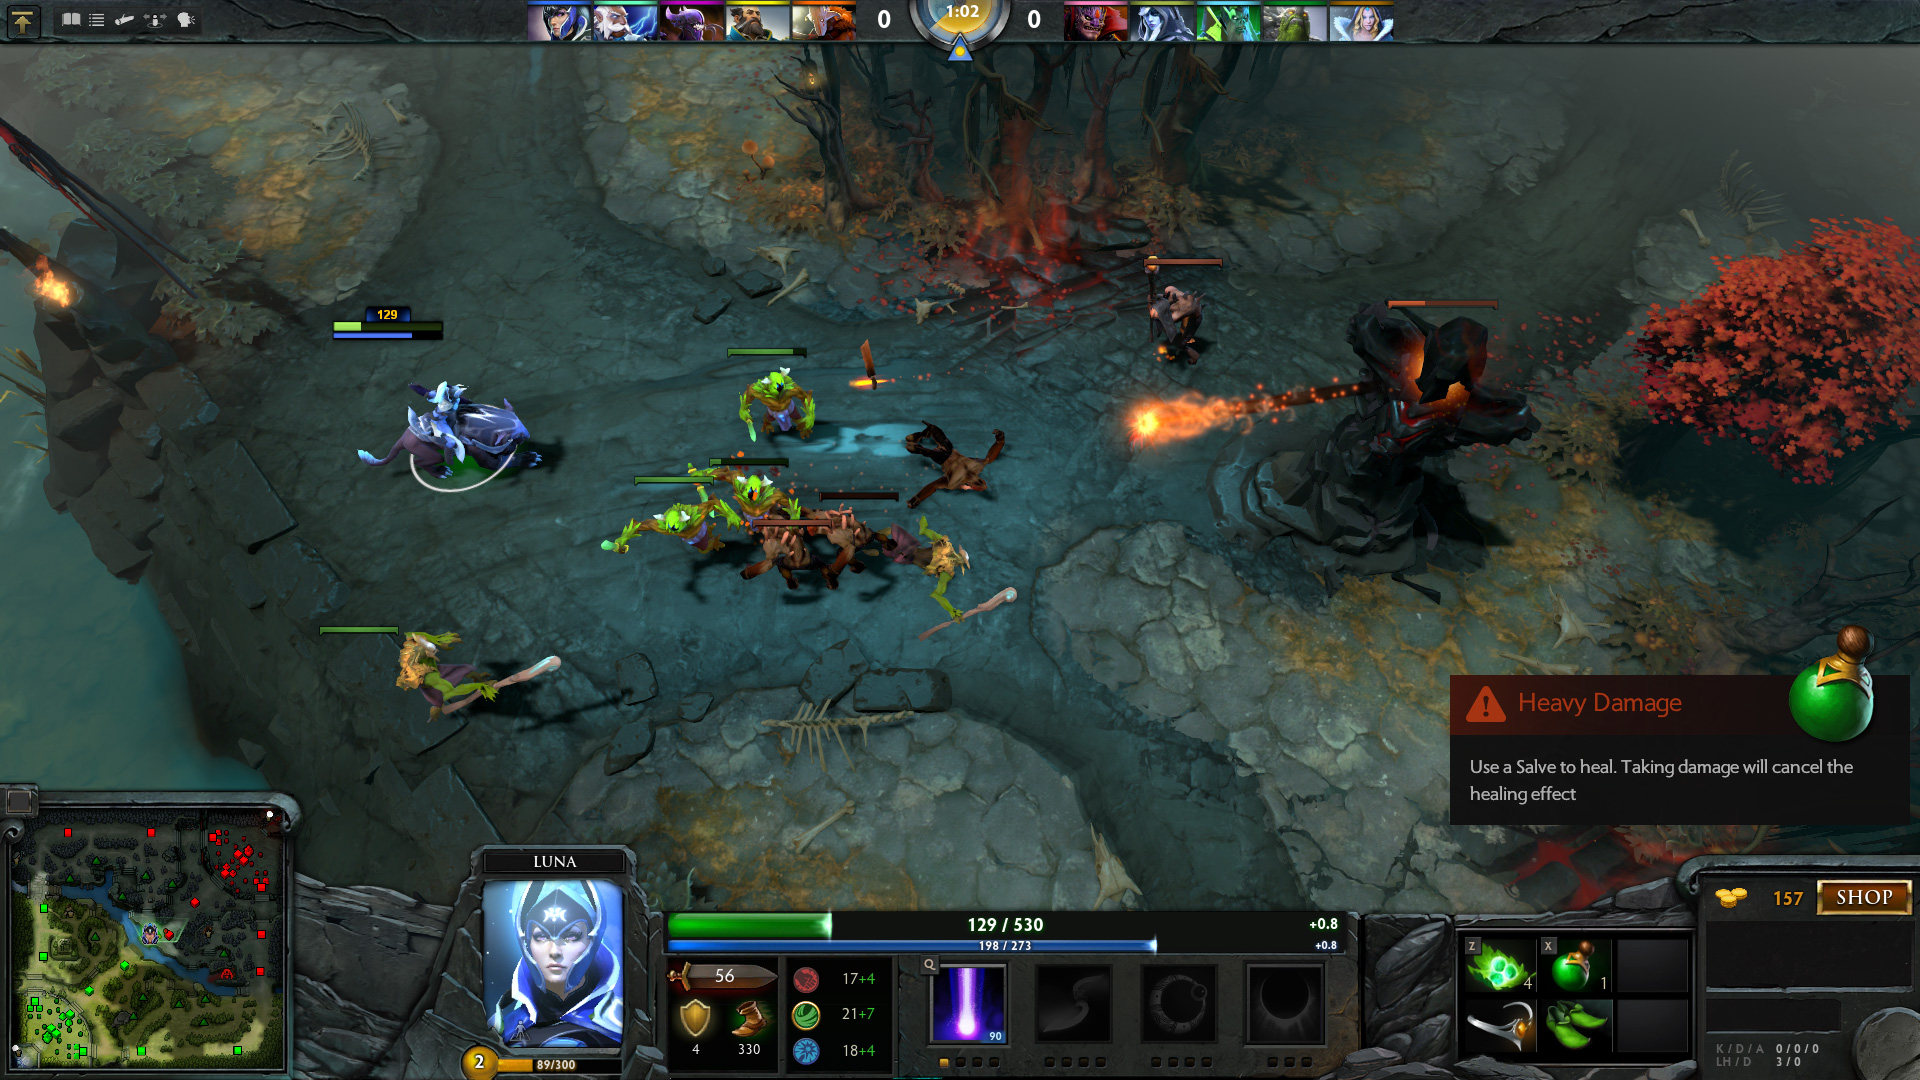 Dota 2 by Valve is mechanically exactly the same as DotA, but with graphical improvements and updated engine.